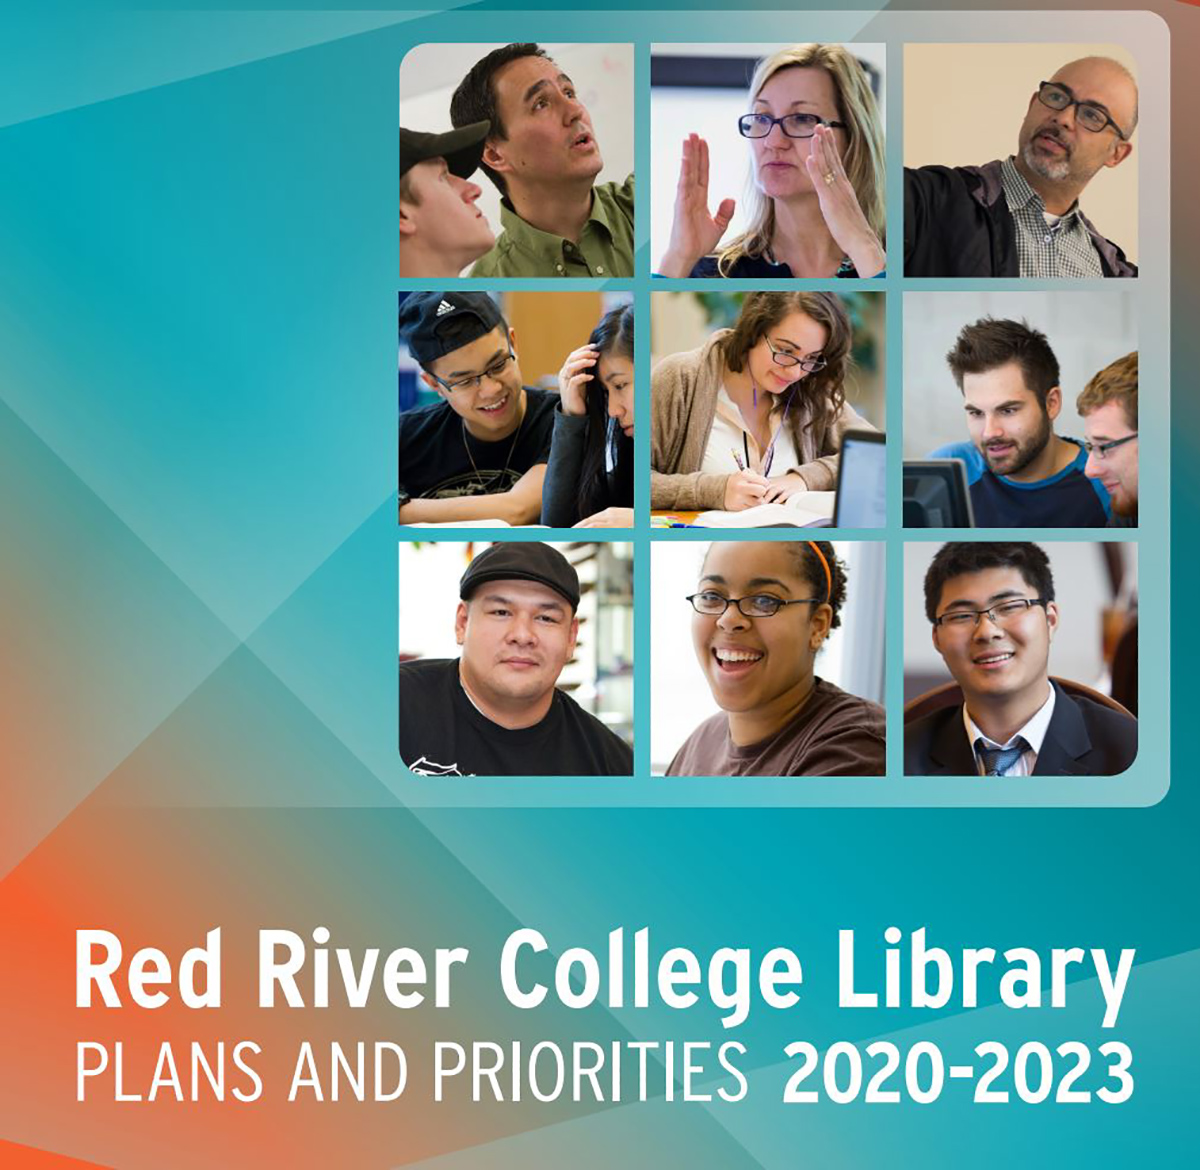 Red River College Library Plans and Priorities 2020-2023